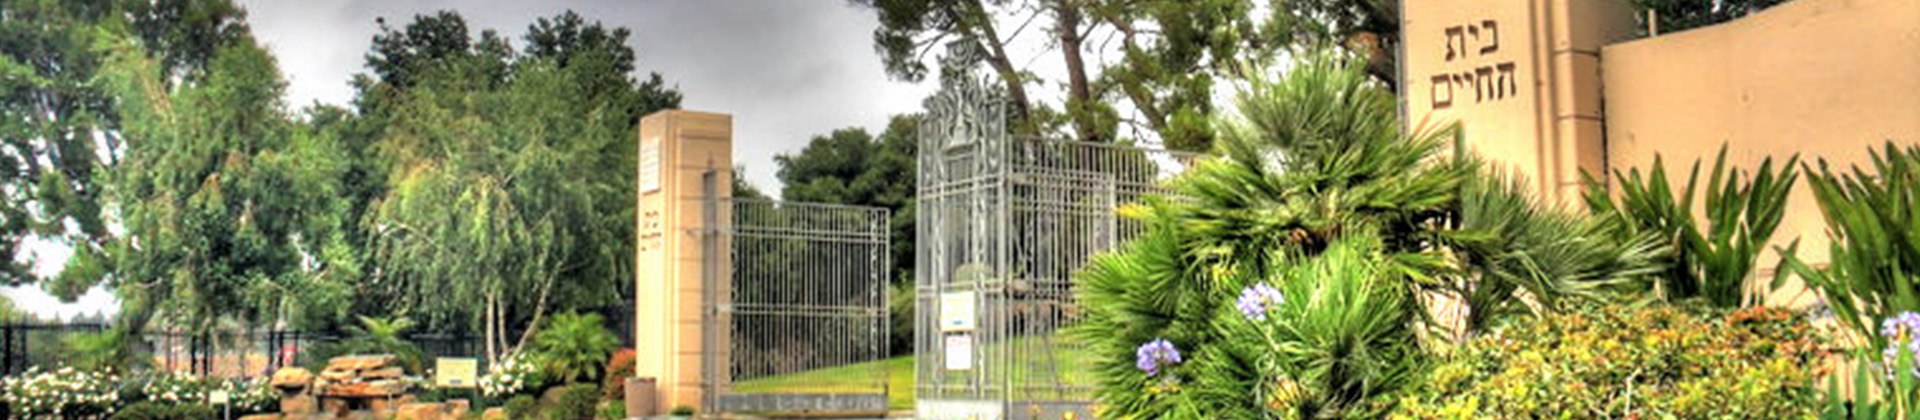 Entrance Gates at Mount Sinai Hollywood Hills A special place for Jewish Funeral Customs